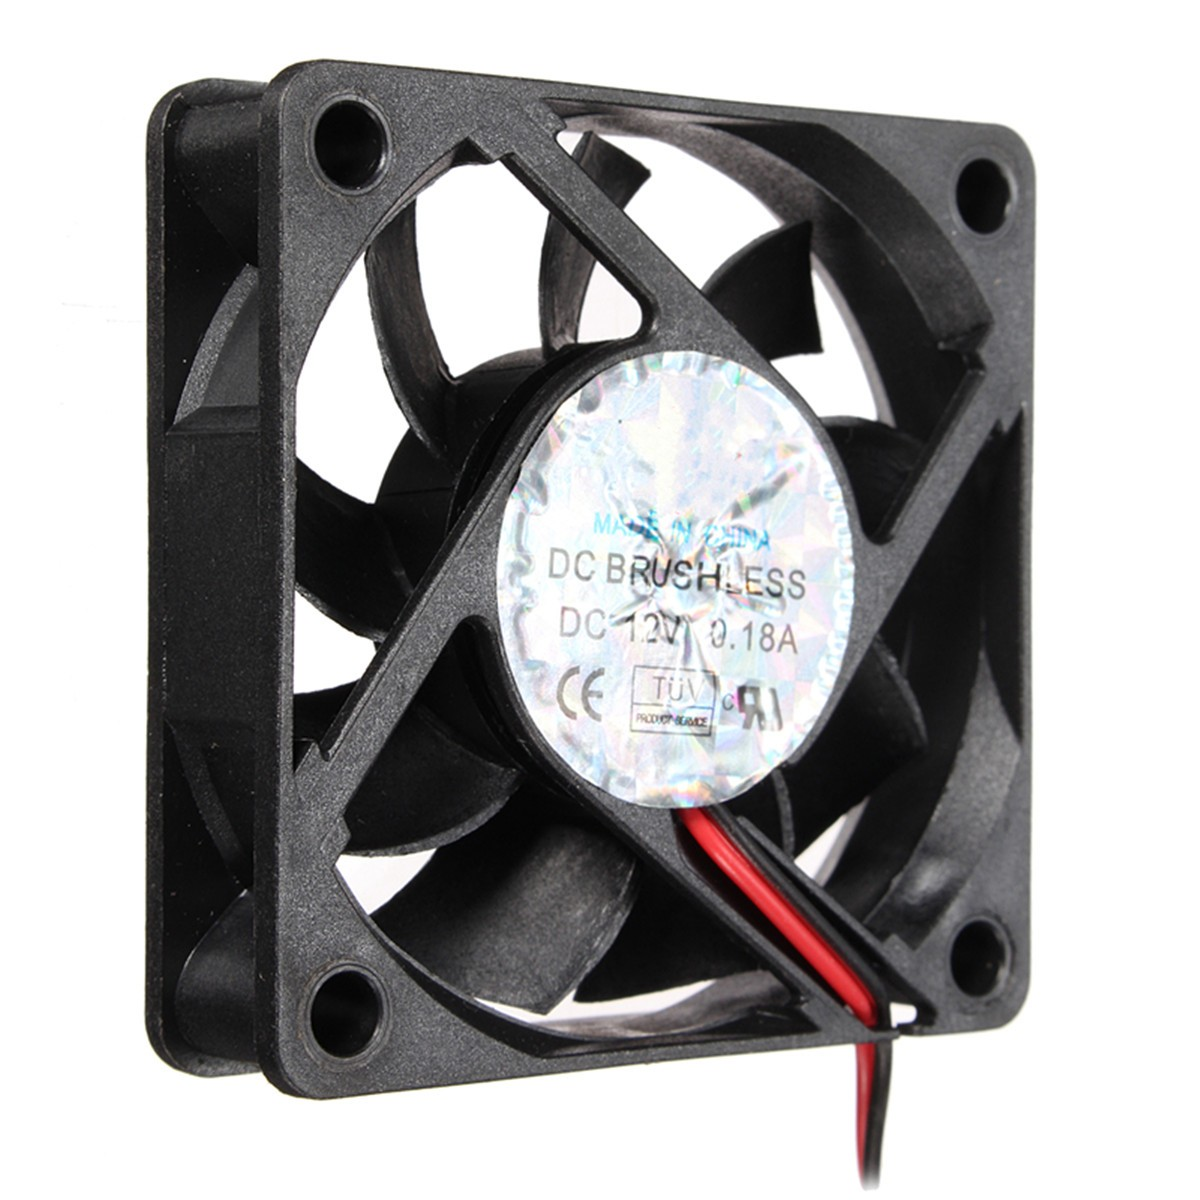 4Pin DC 12V 60mm x 60mm x 15MM Computer CPU Cooler Cooling Fan PC(China (Mainland))